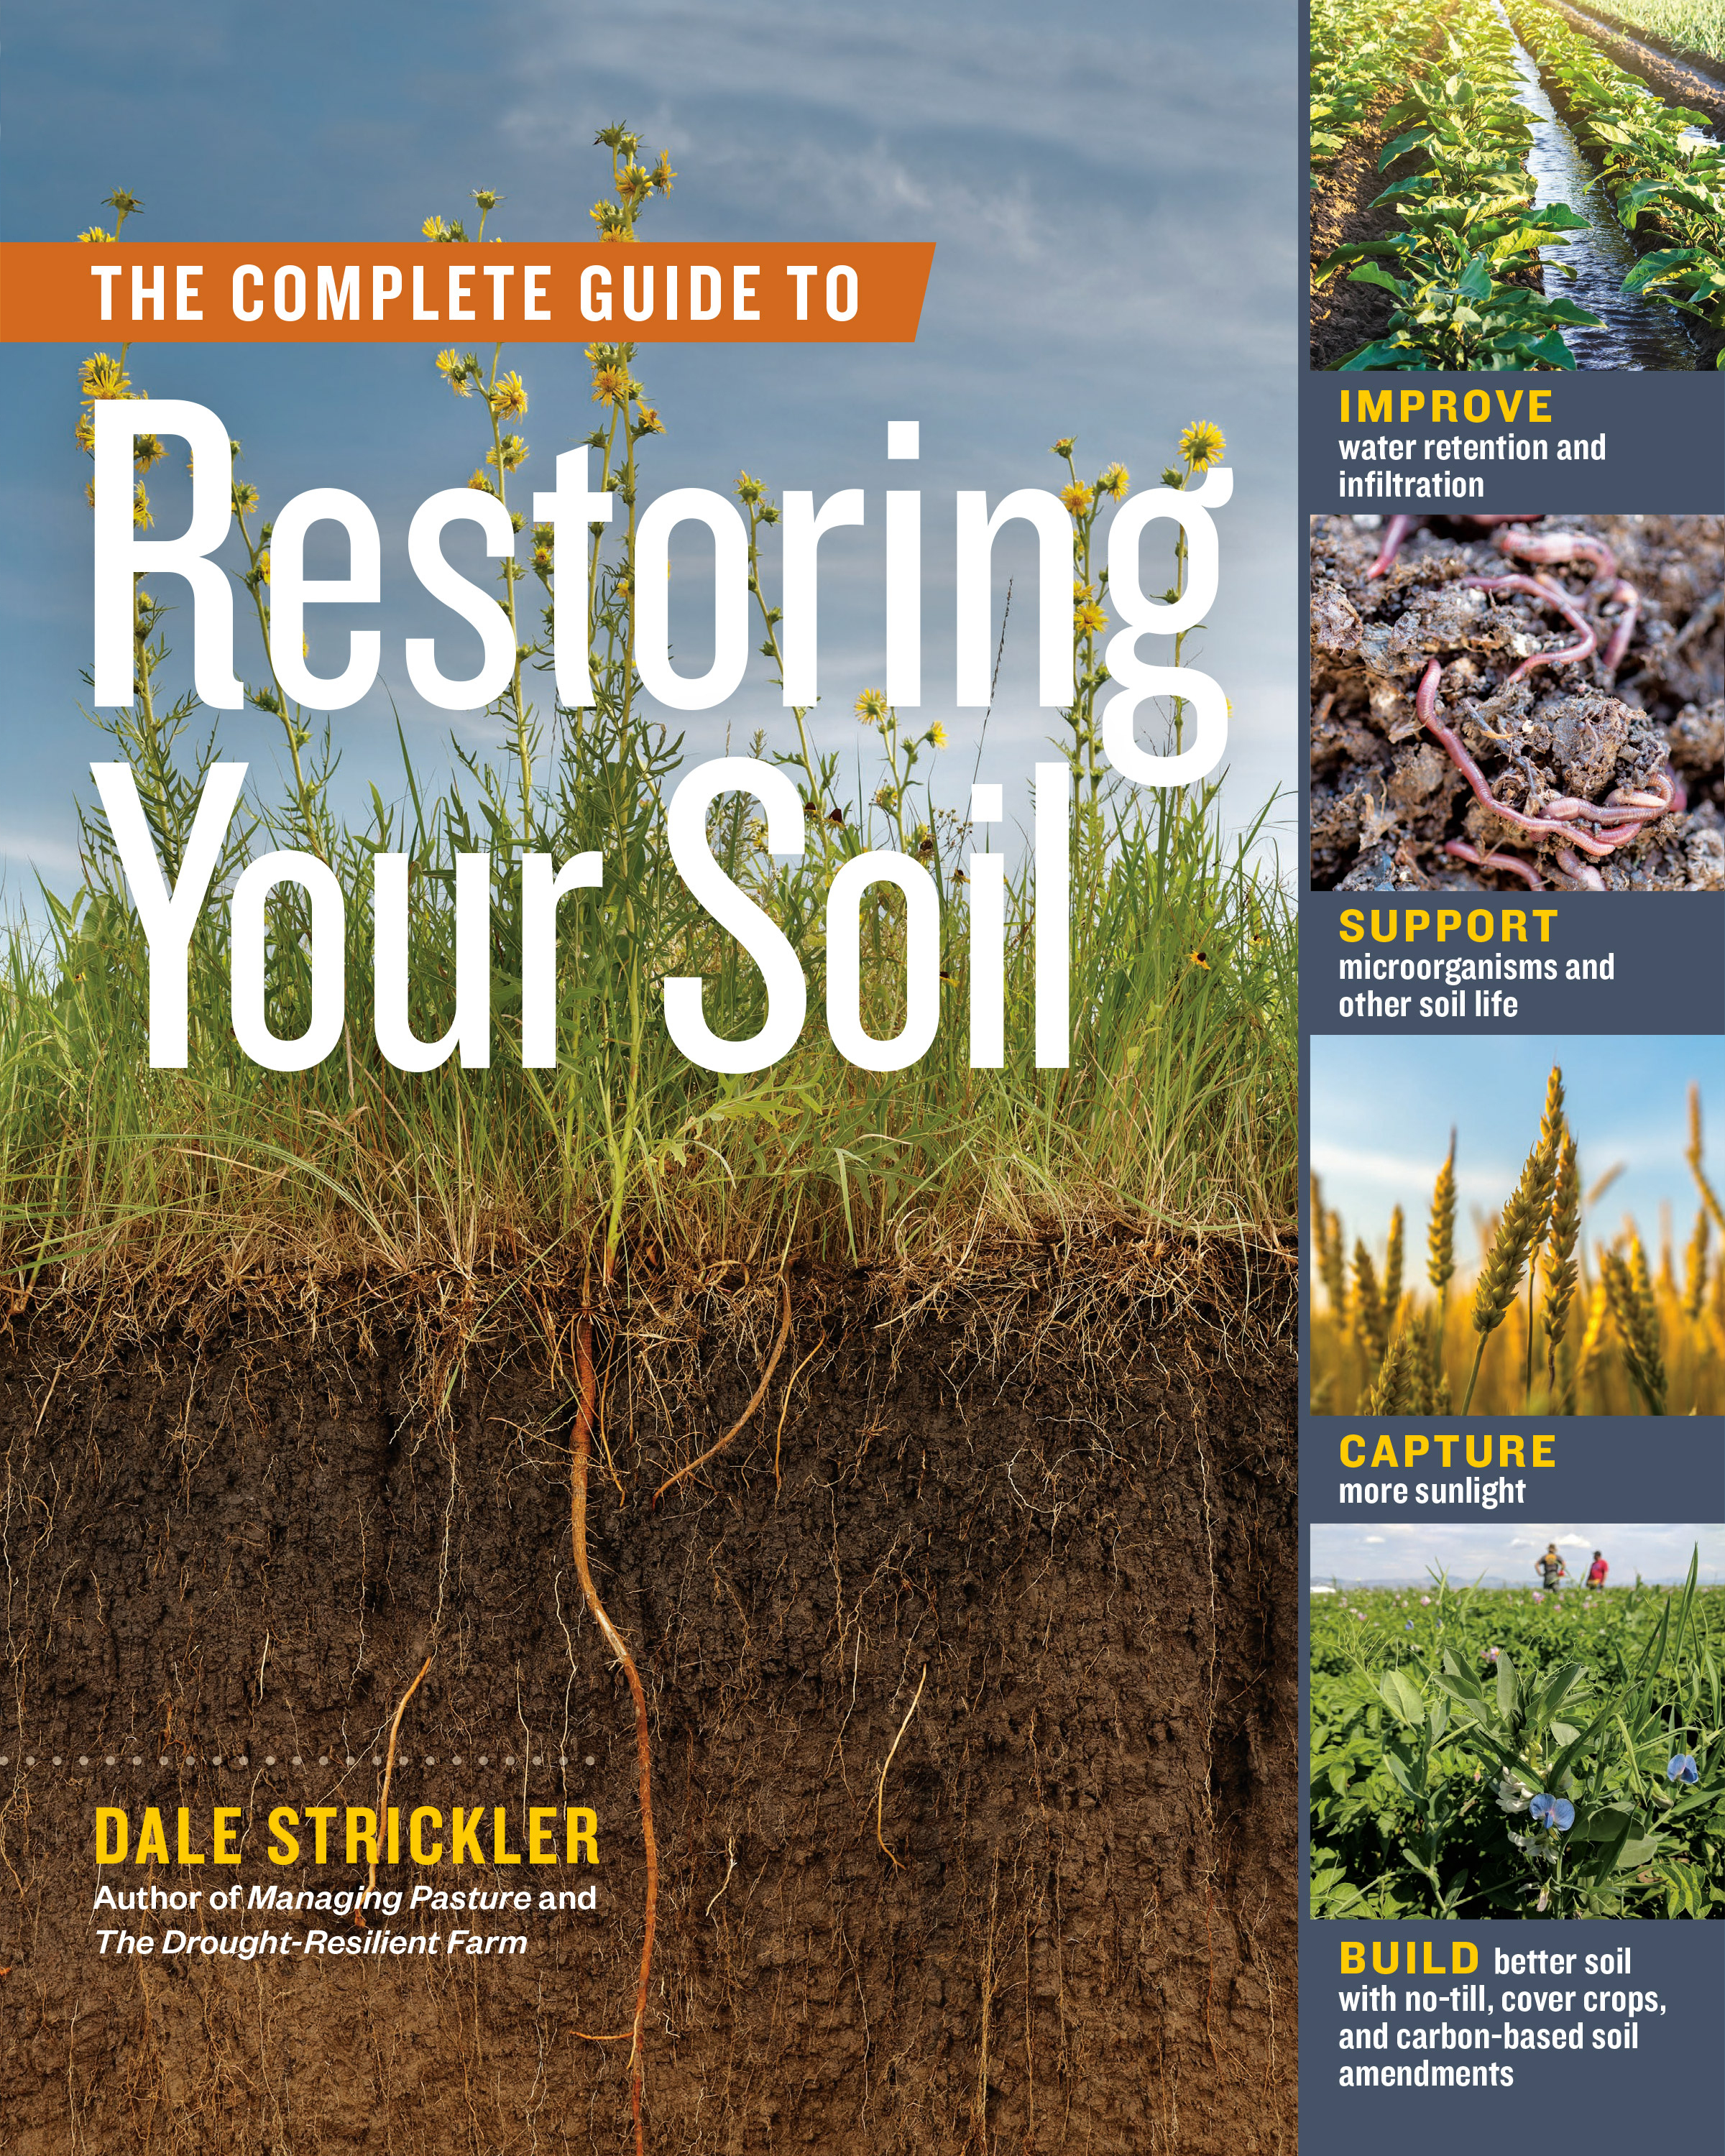 The Complete Guide to Restoring Your Soil Improve Water Retention and Infiltration; Support Microorganisms and Other Soil Life; Capture More Sunlight; and Build Better Soil with No-Till, Cover Crops, and Carbon-Based Soil Amendments - Dale Strickler